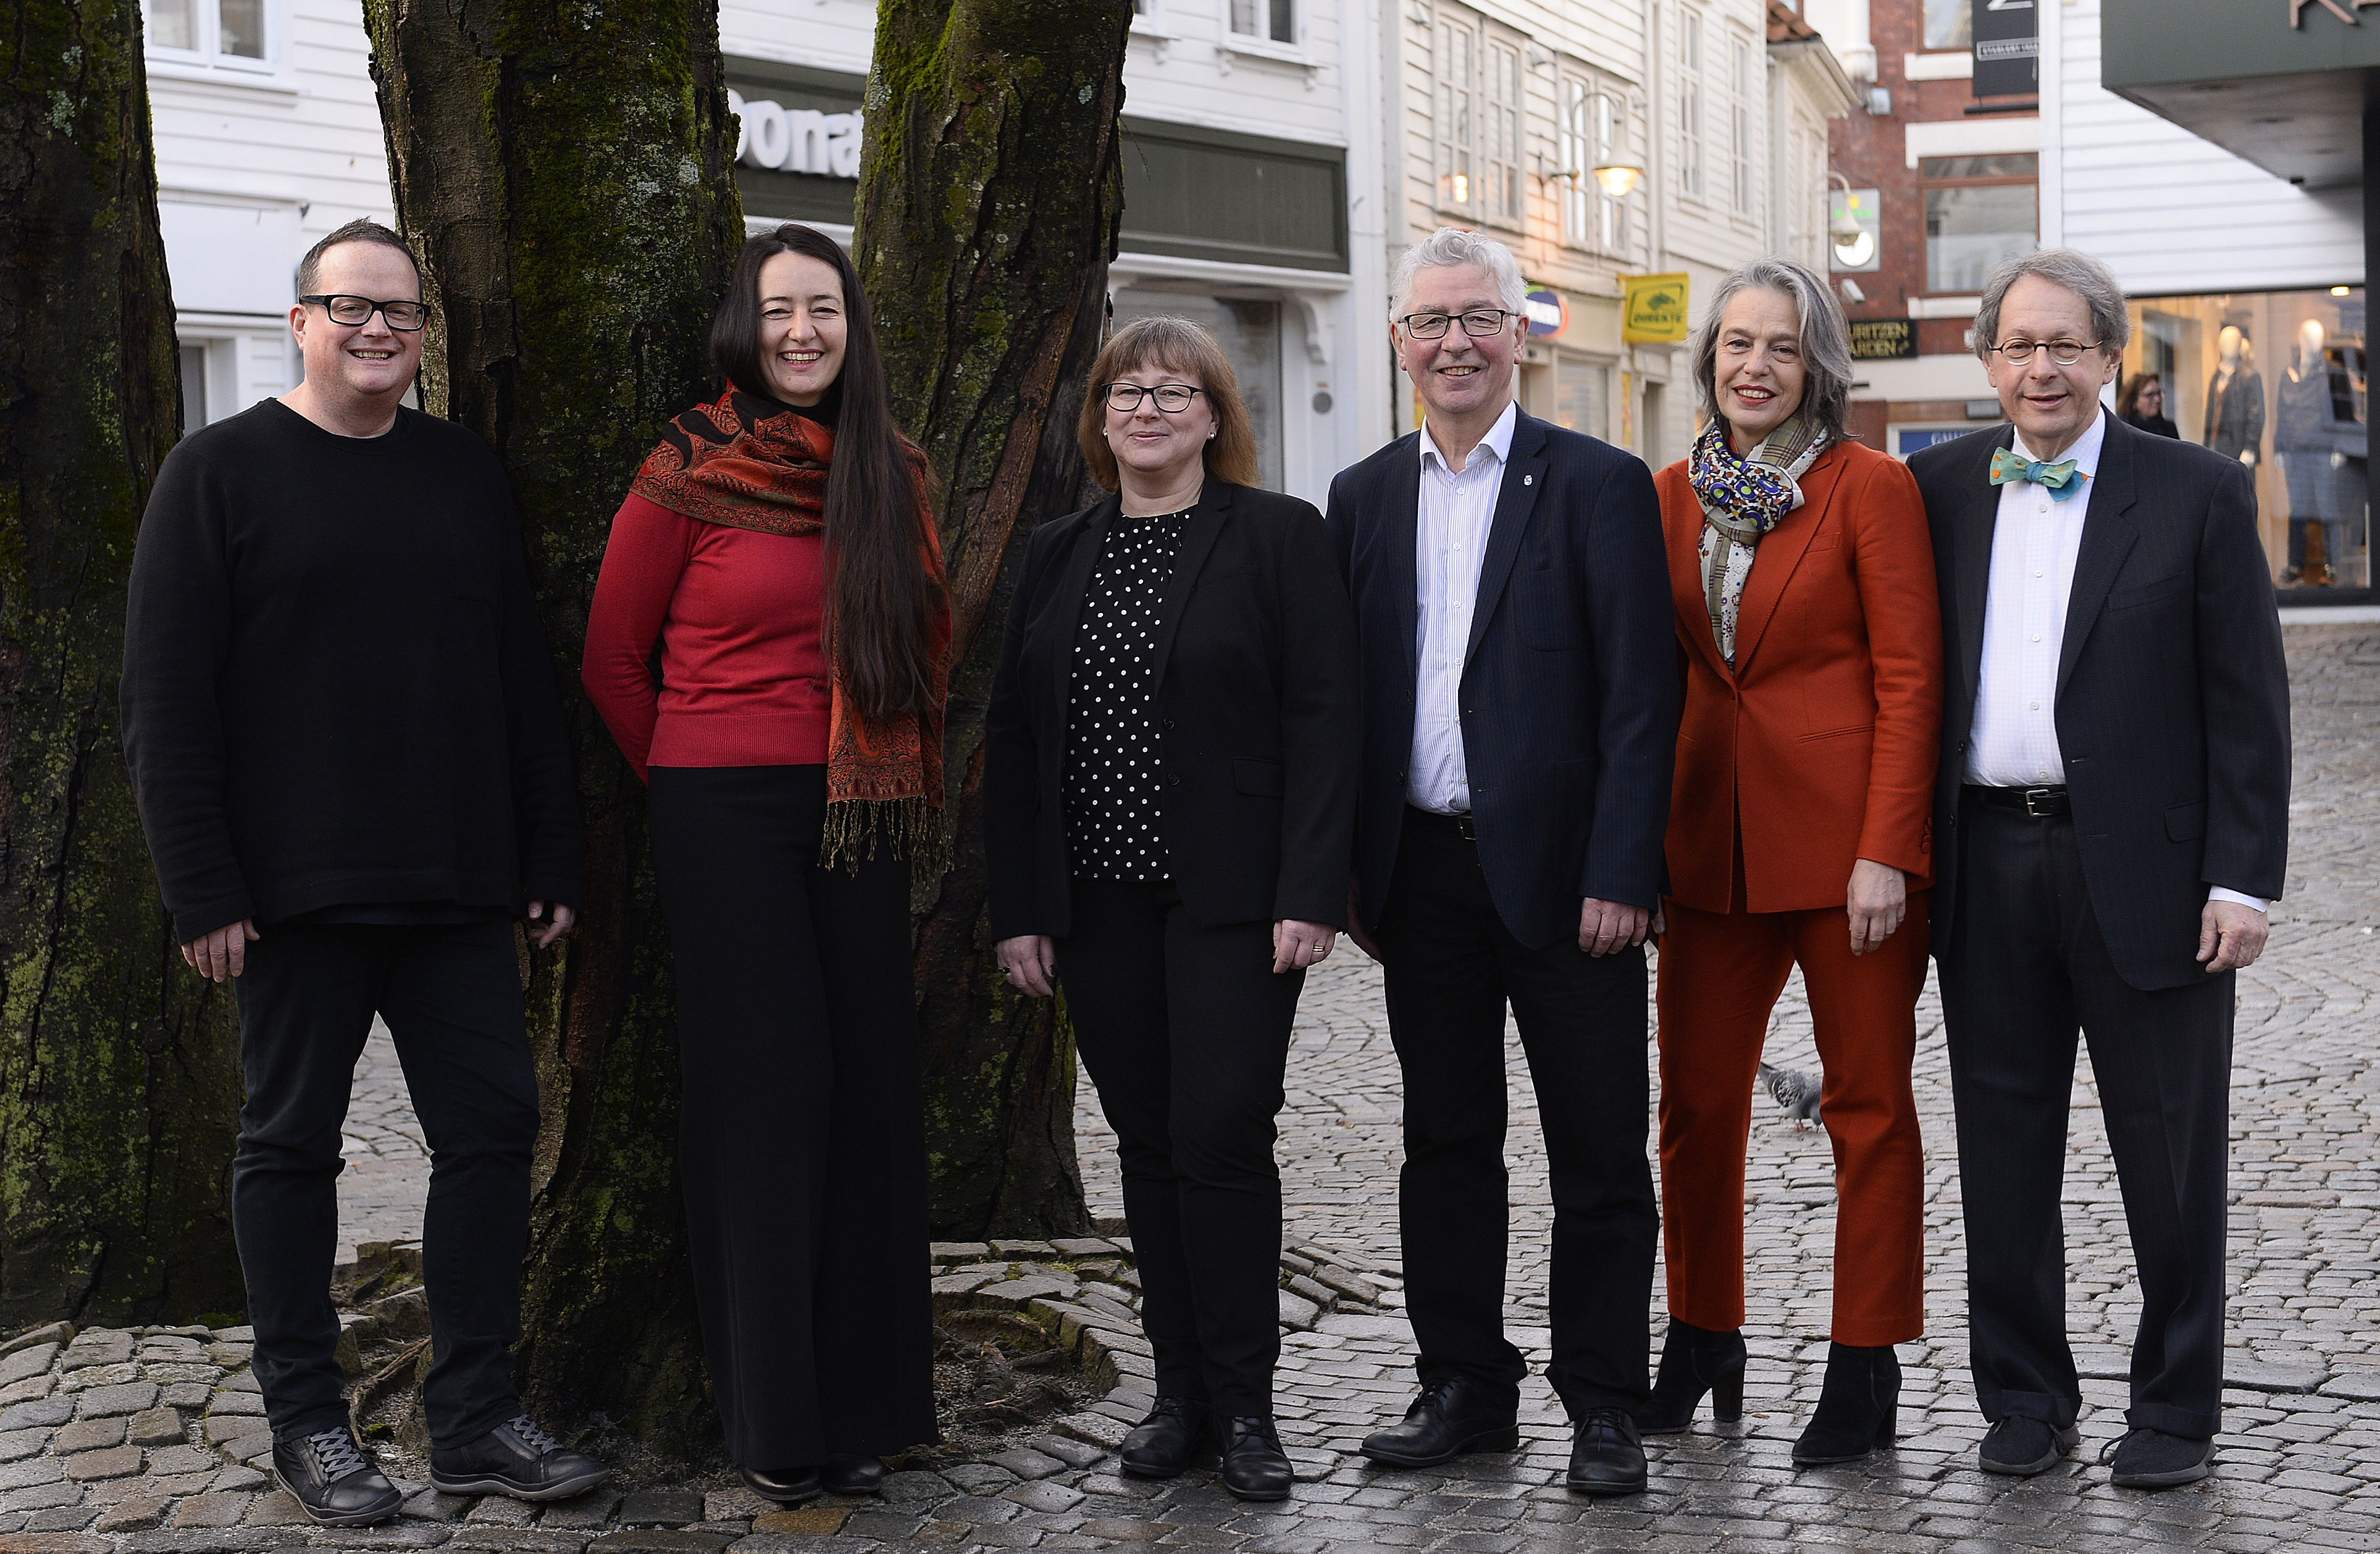 The ICORN Board (from 2018). From left: Chris Gribble, Chair of Board, Jasmina Rihar, Board Member, Annika Strömberg, Vice Chair, Henry Andersen, Board Member, Sabine Gimbrere, Board Member, Henry Reese, Board Member. Photo: Jonas Friestad. Photo.